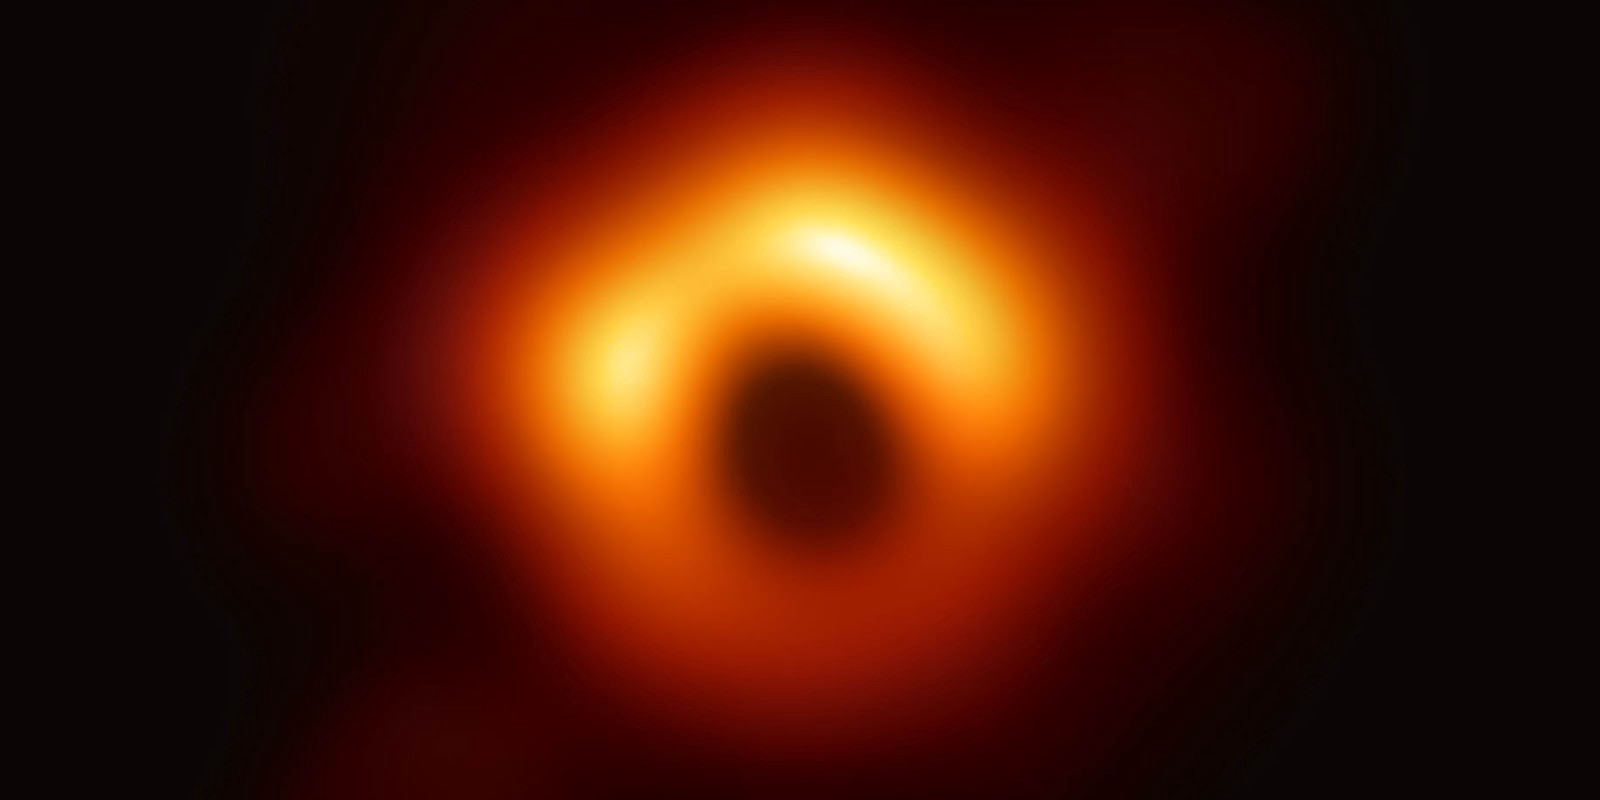 How Data Made Capturing the Black Hole Image Possible